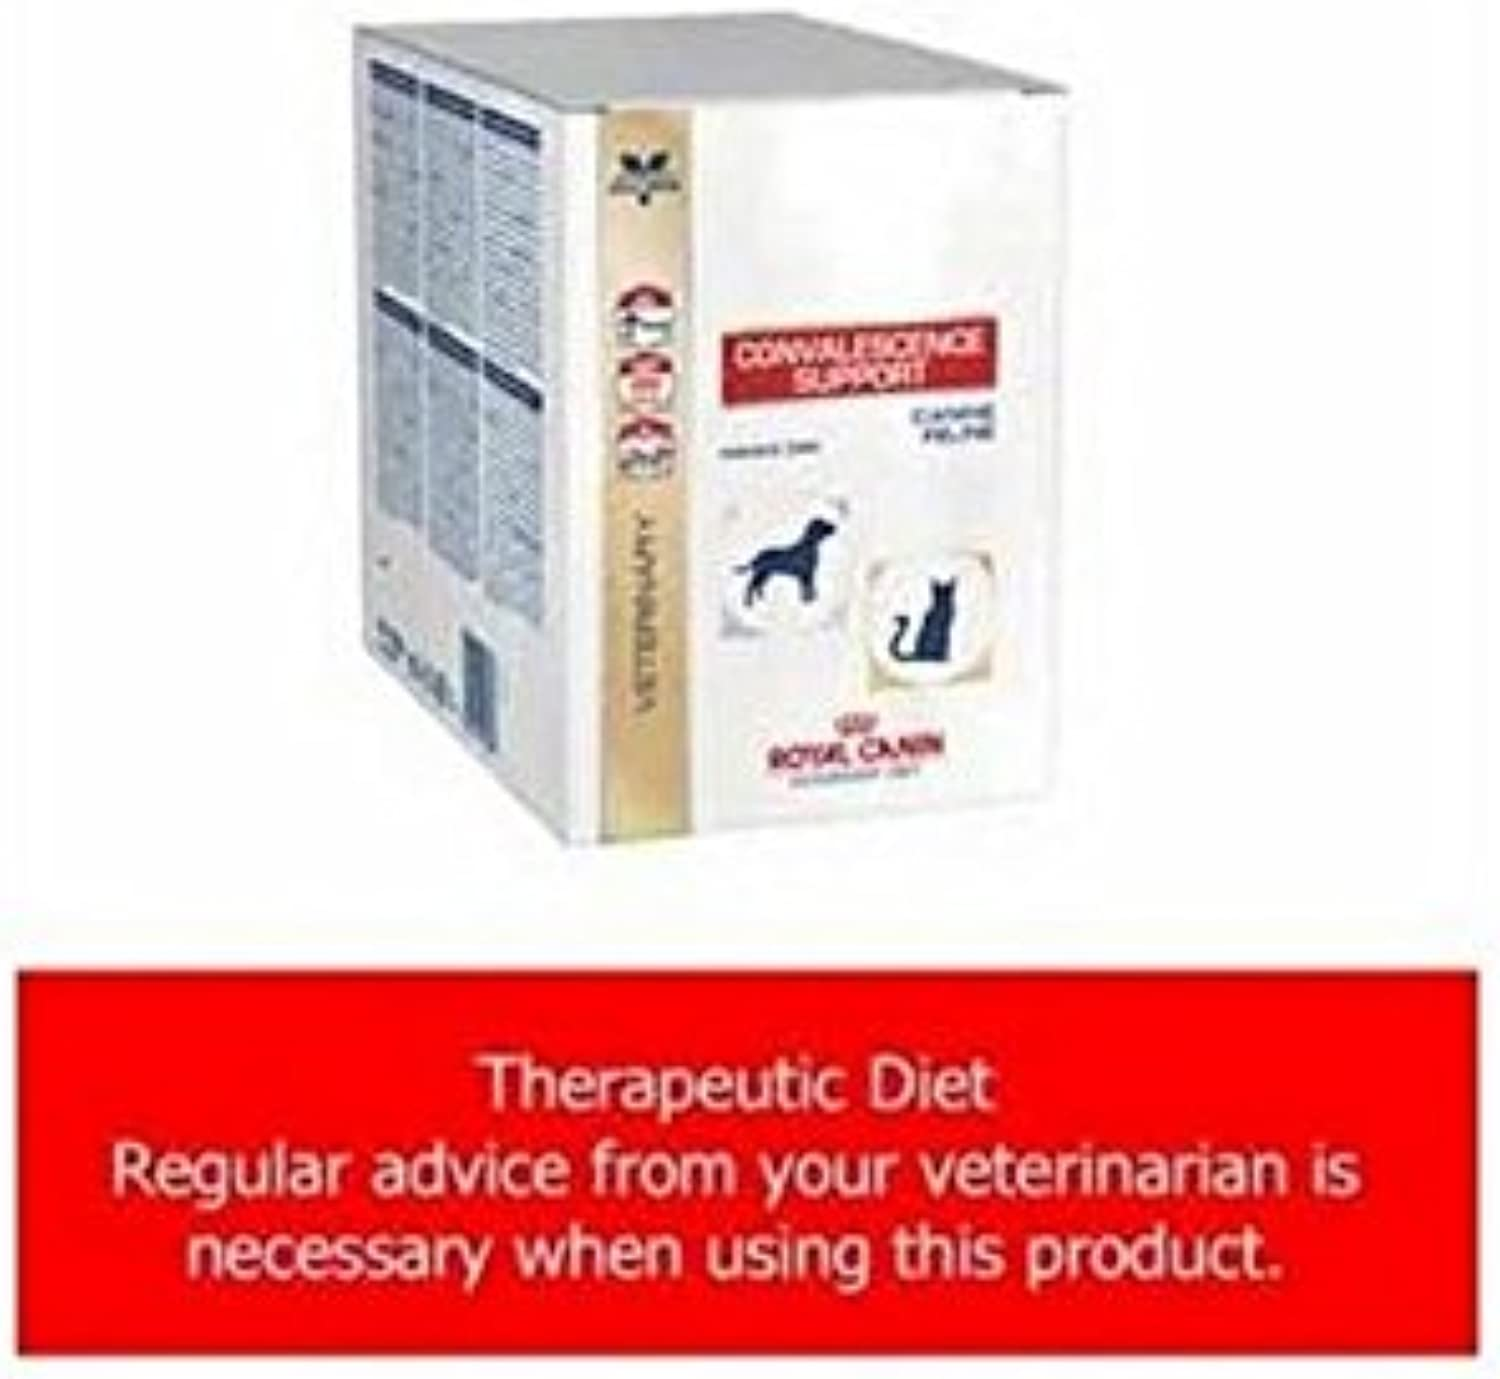 Royal Canin Convalescence Support Clinical Canine Feline Instant 10 x 50g (500g)